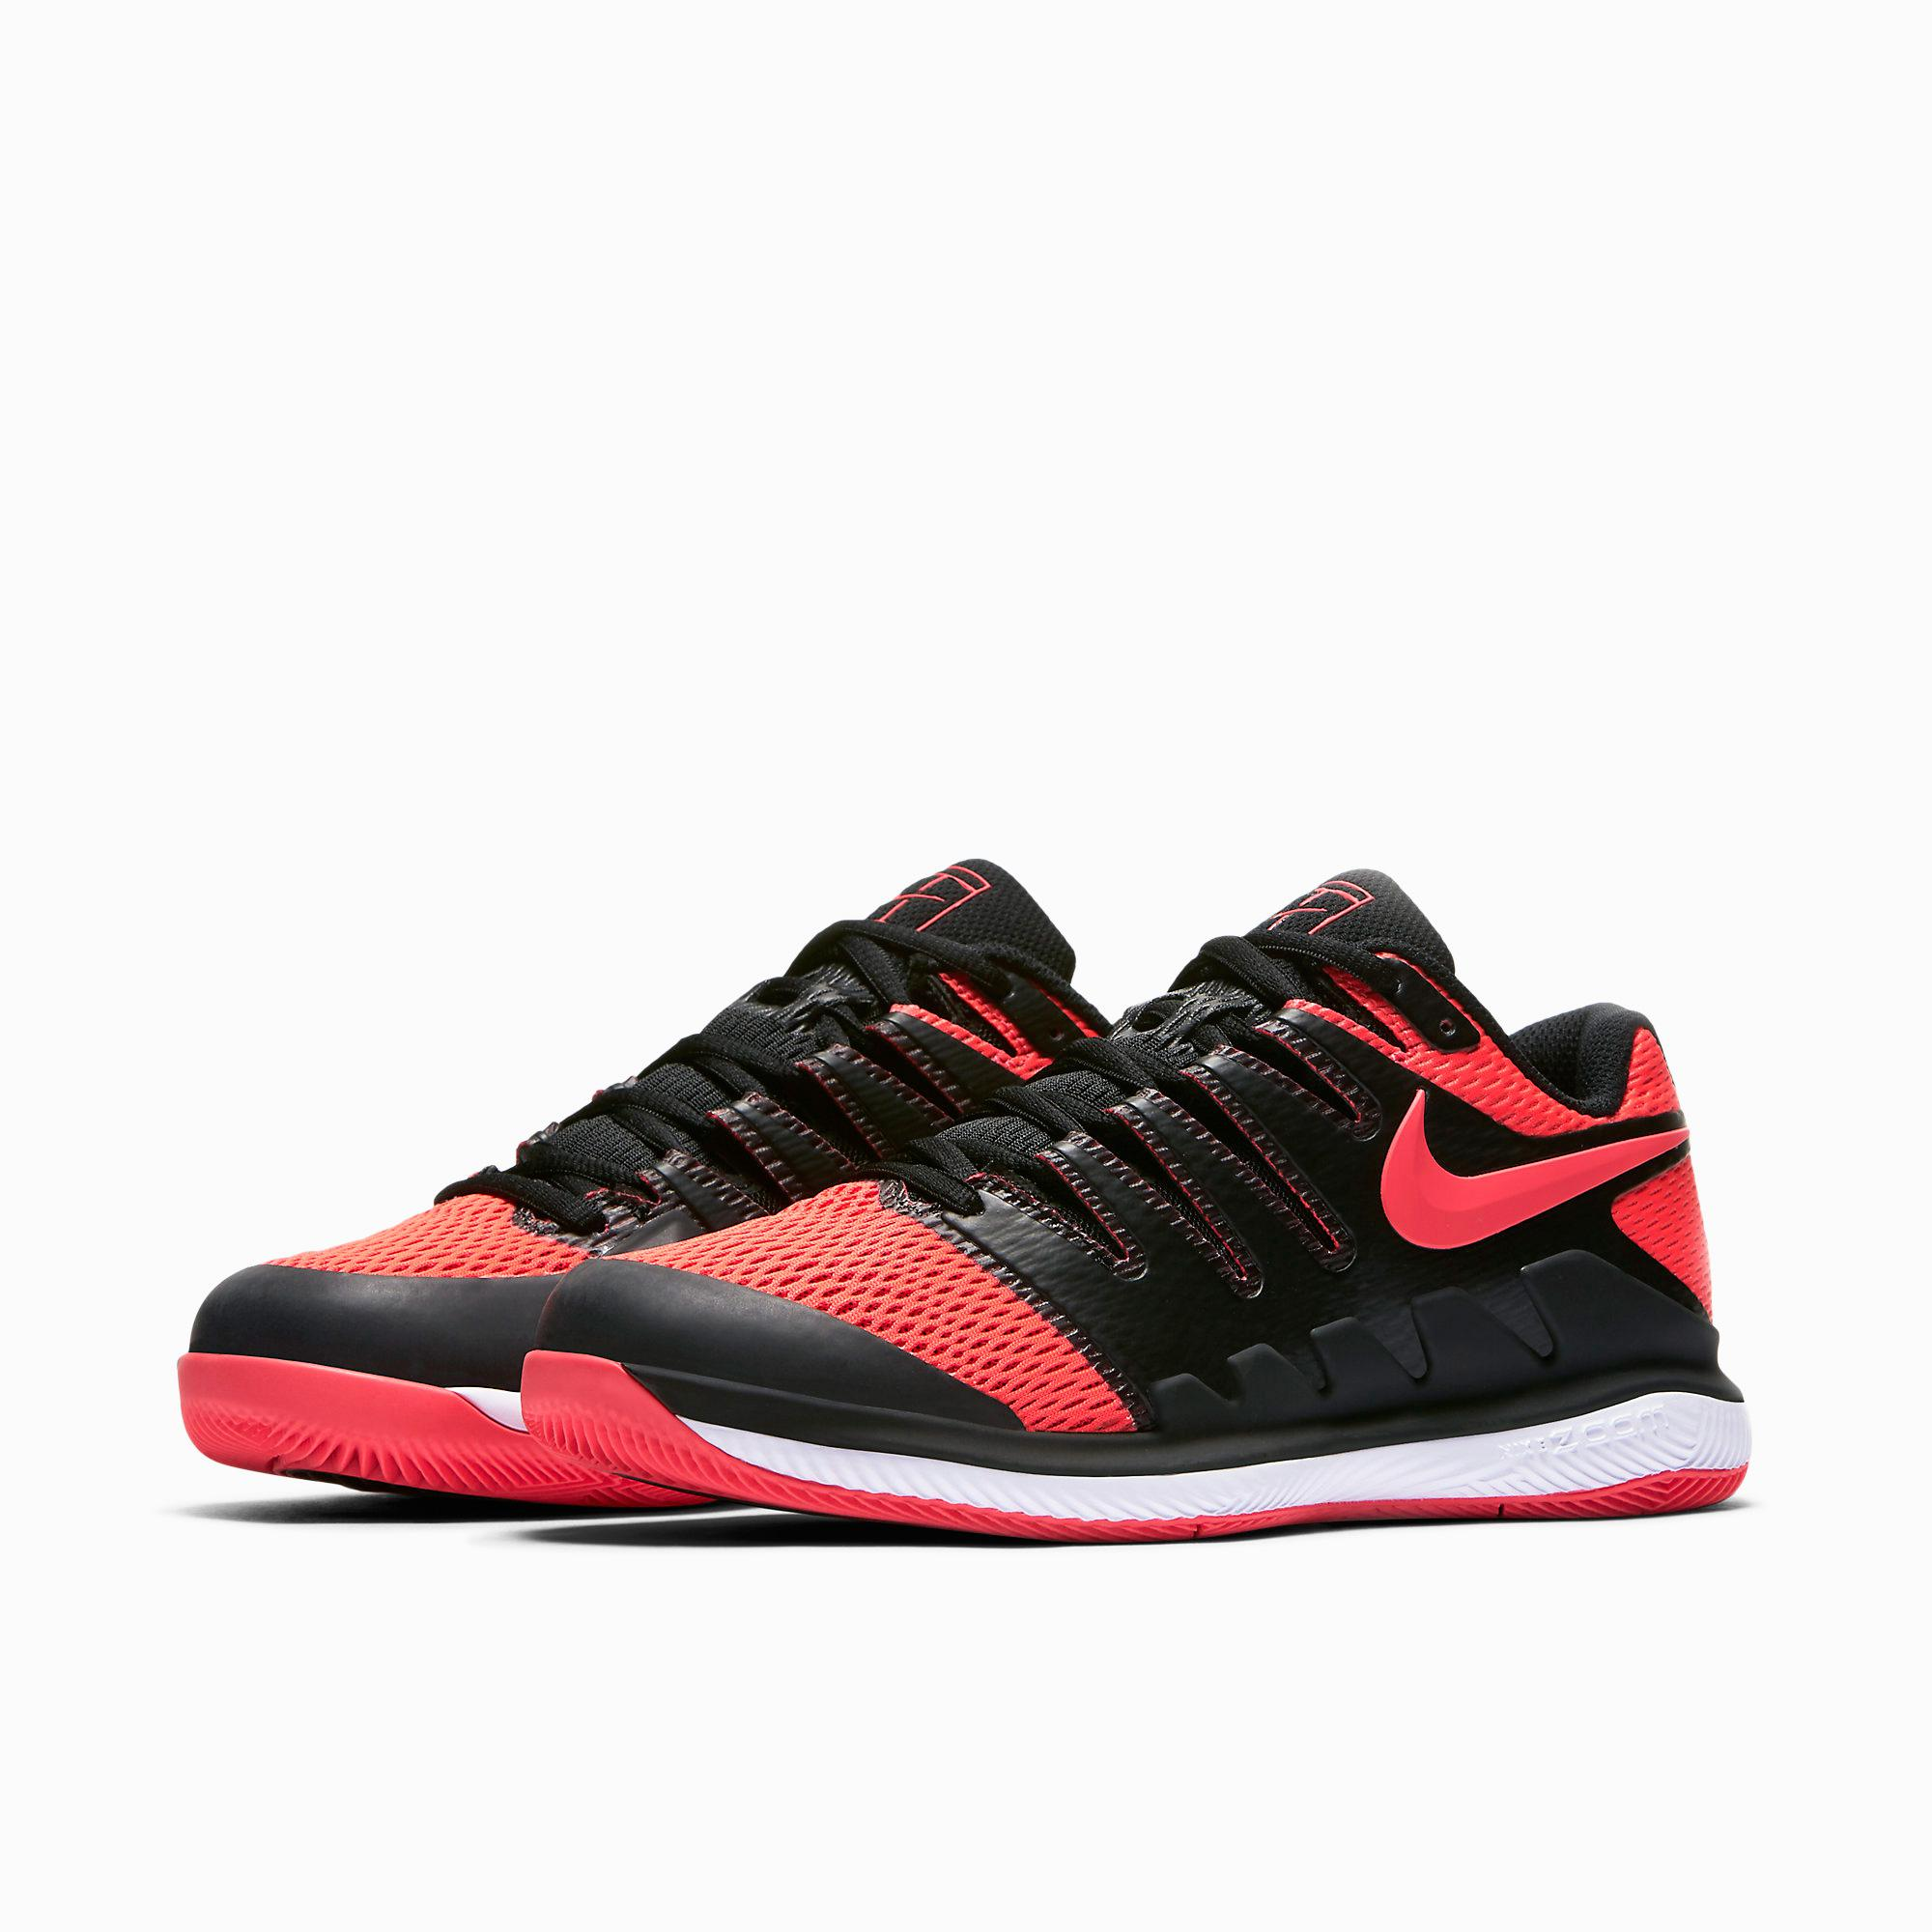 d9172cc9b7dba5 Nike Womens Air Zoom Vapor X Tennis Shoes - Solar Red Black ...